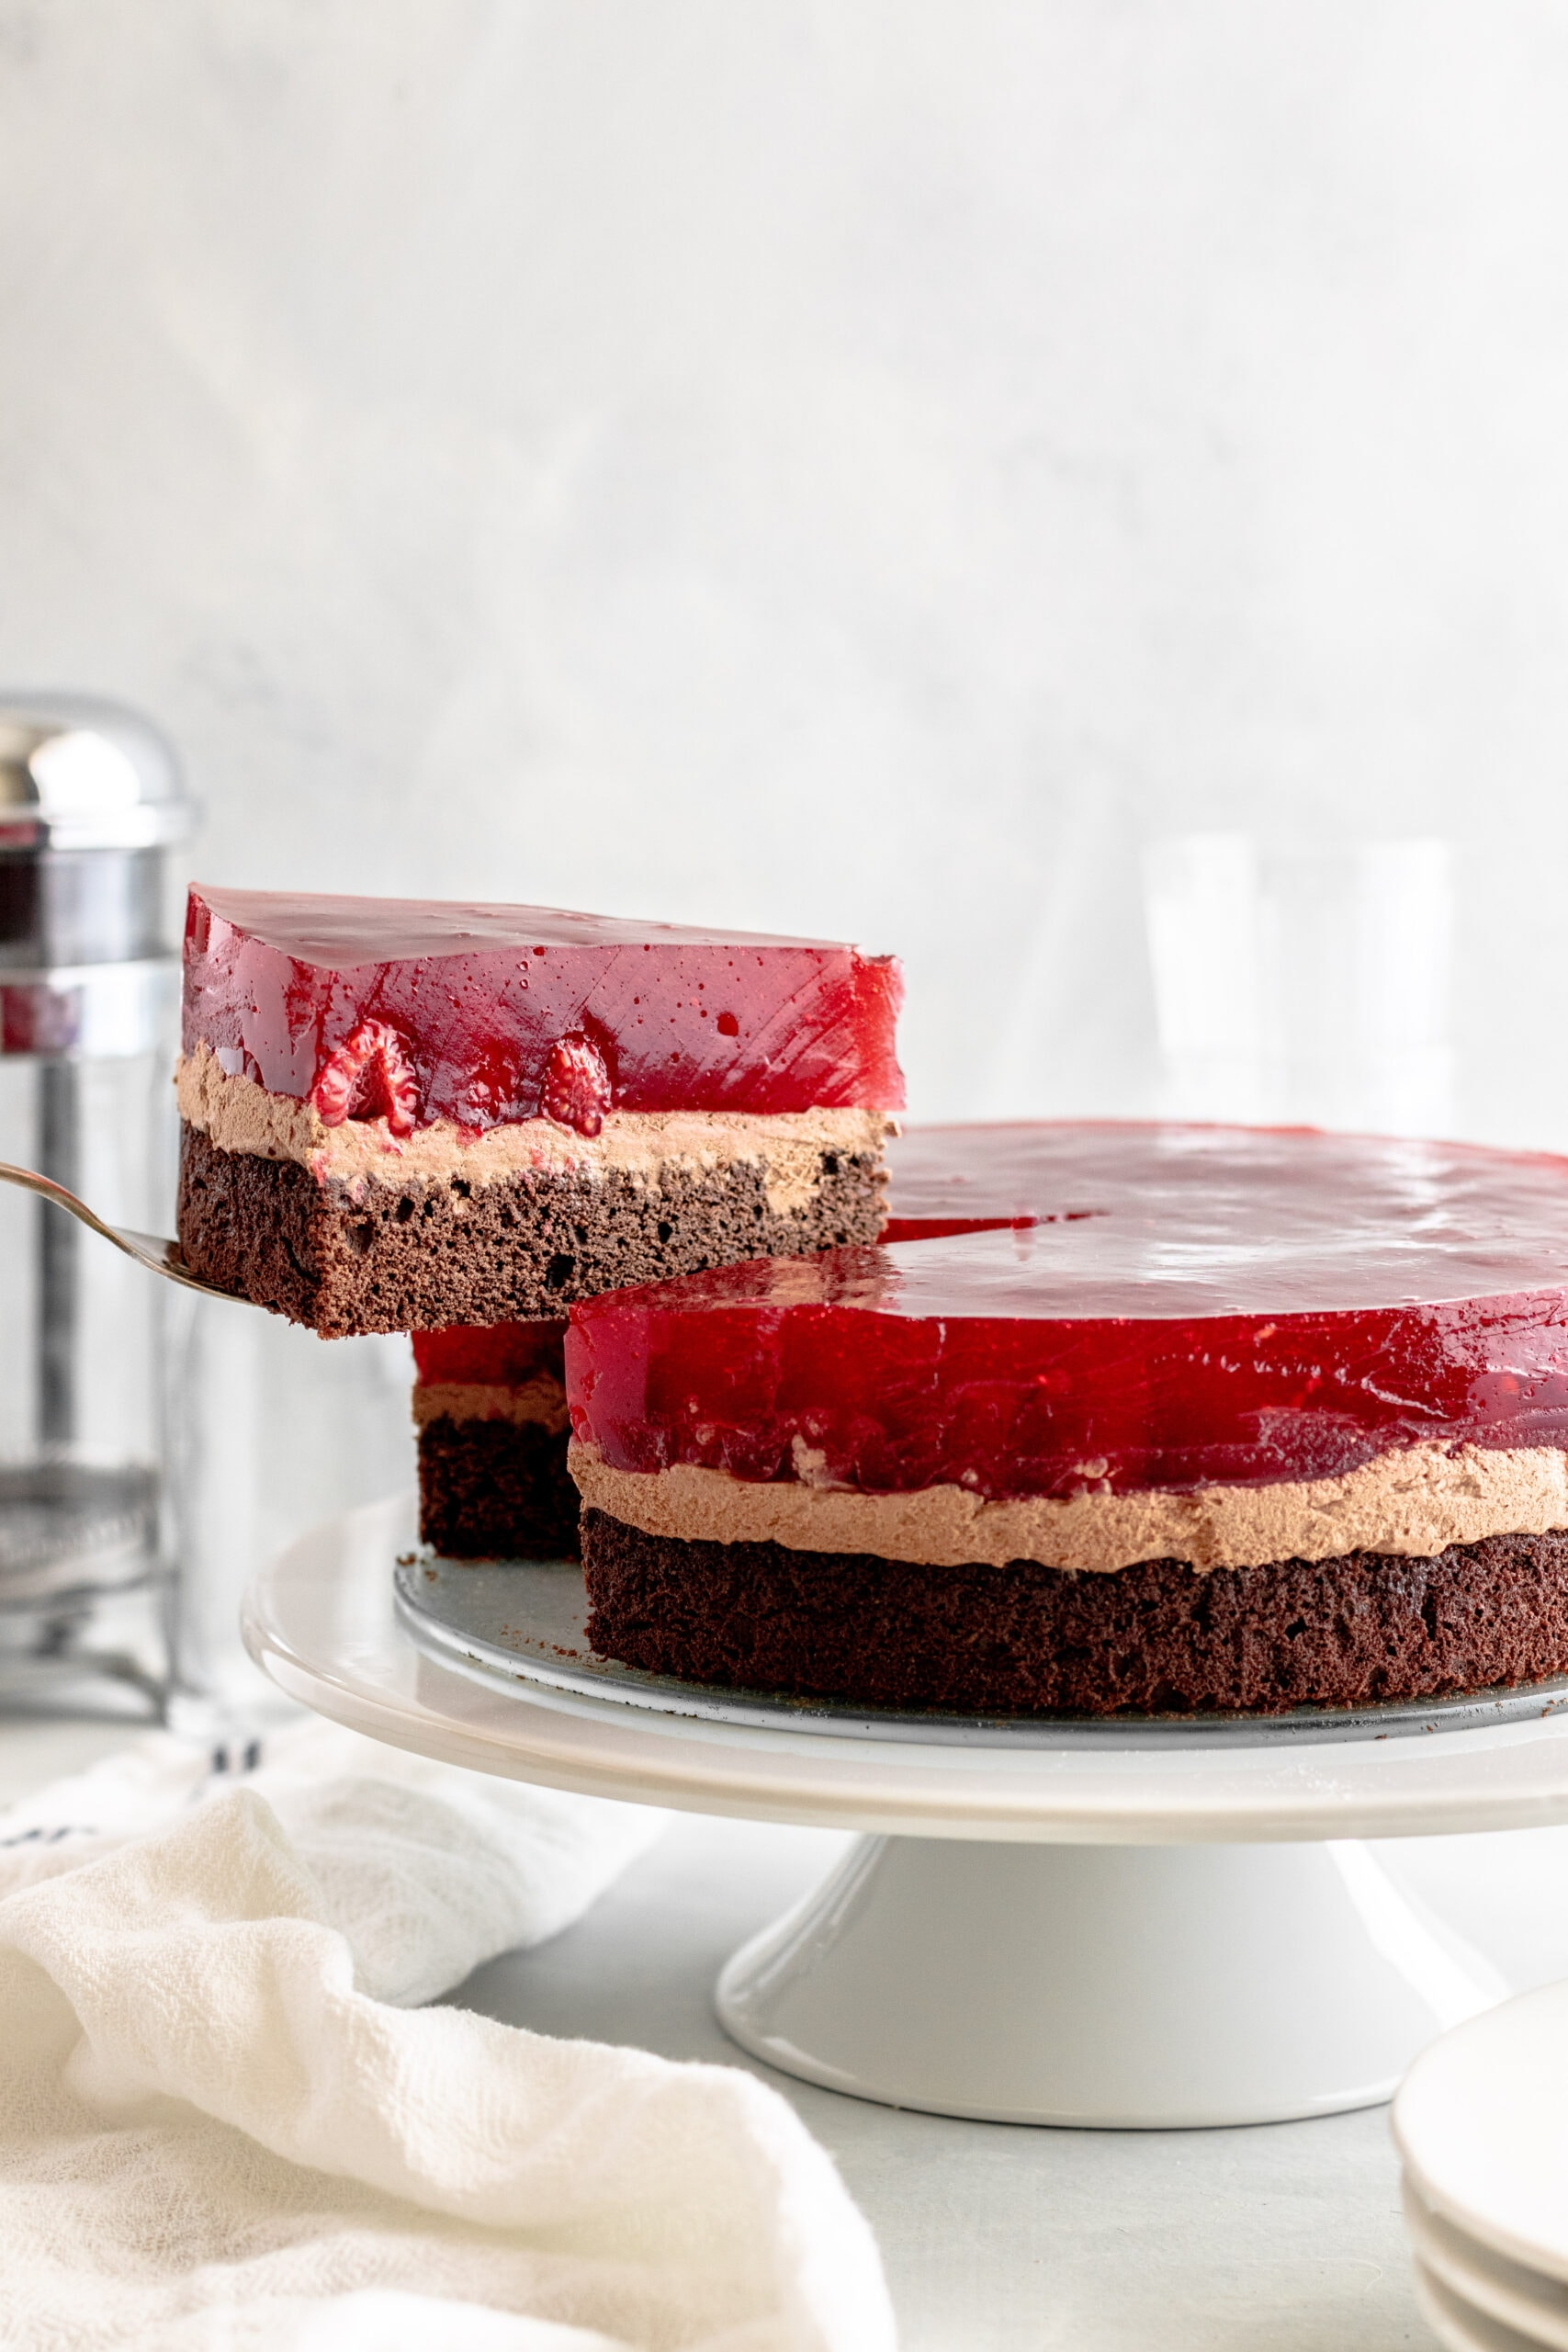 Image of layered Chocolate Raspberry Cake on a white cake stand with a slice being removed.